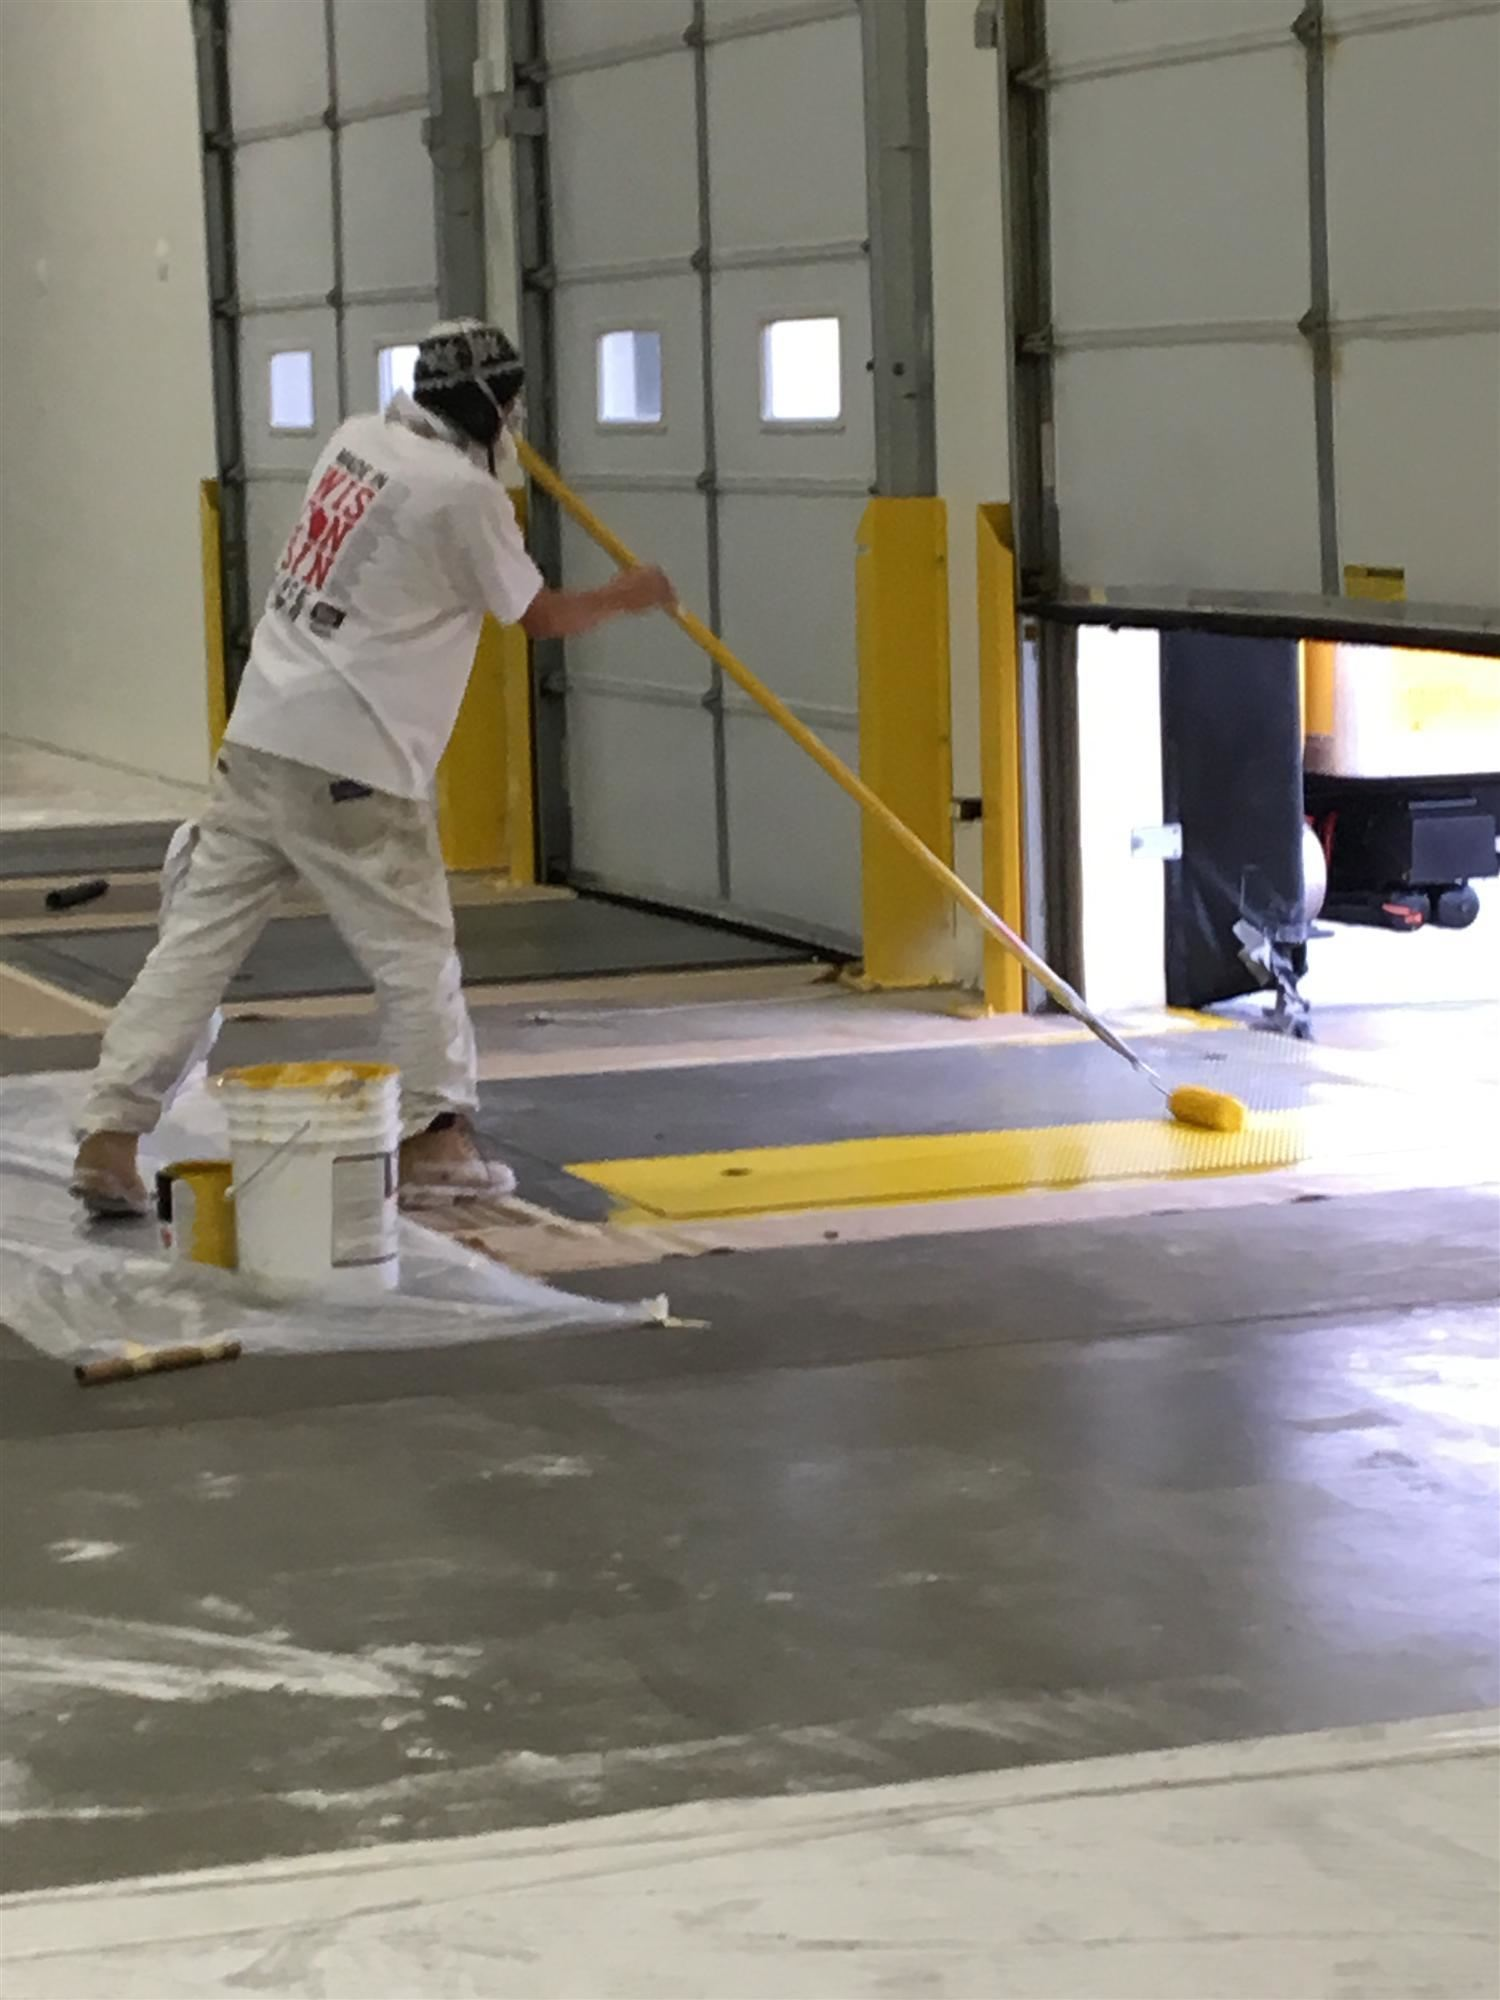 K2 painting contractor hard at work painting a loading dock safety yellow